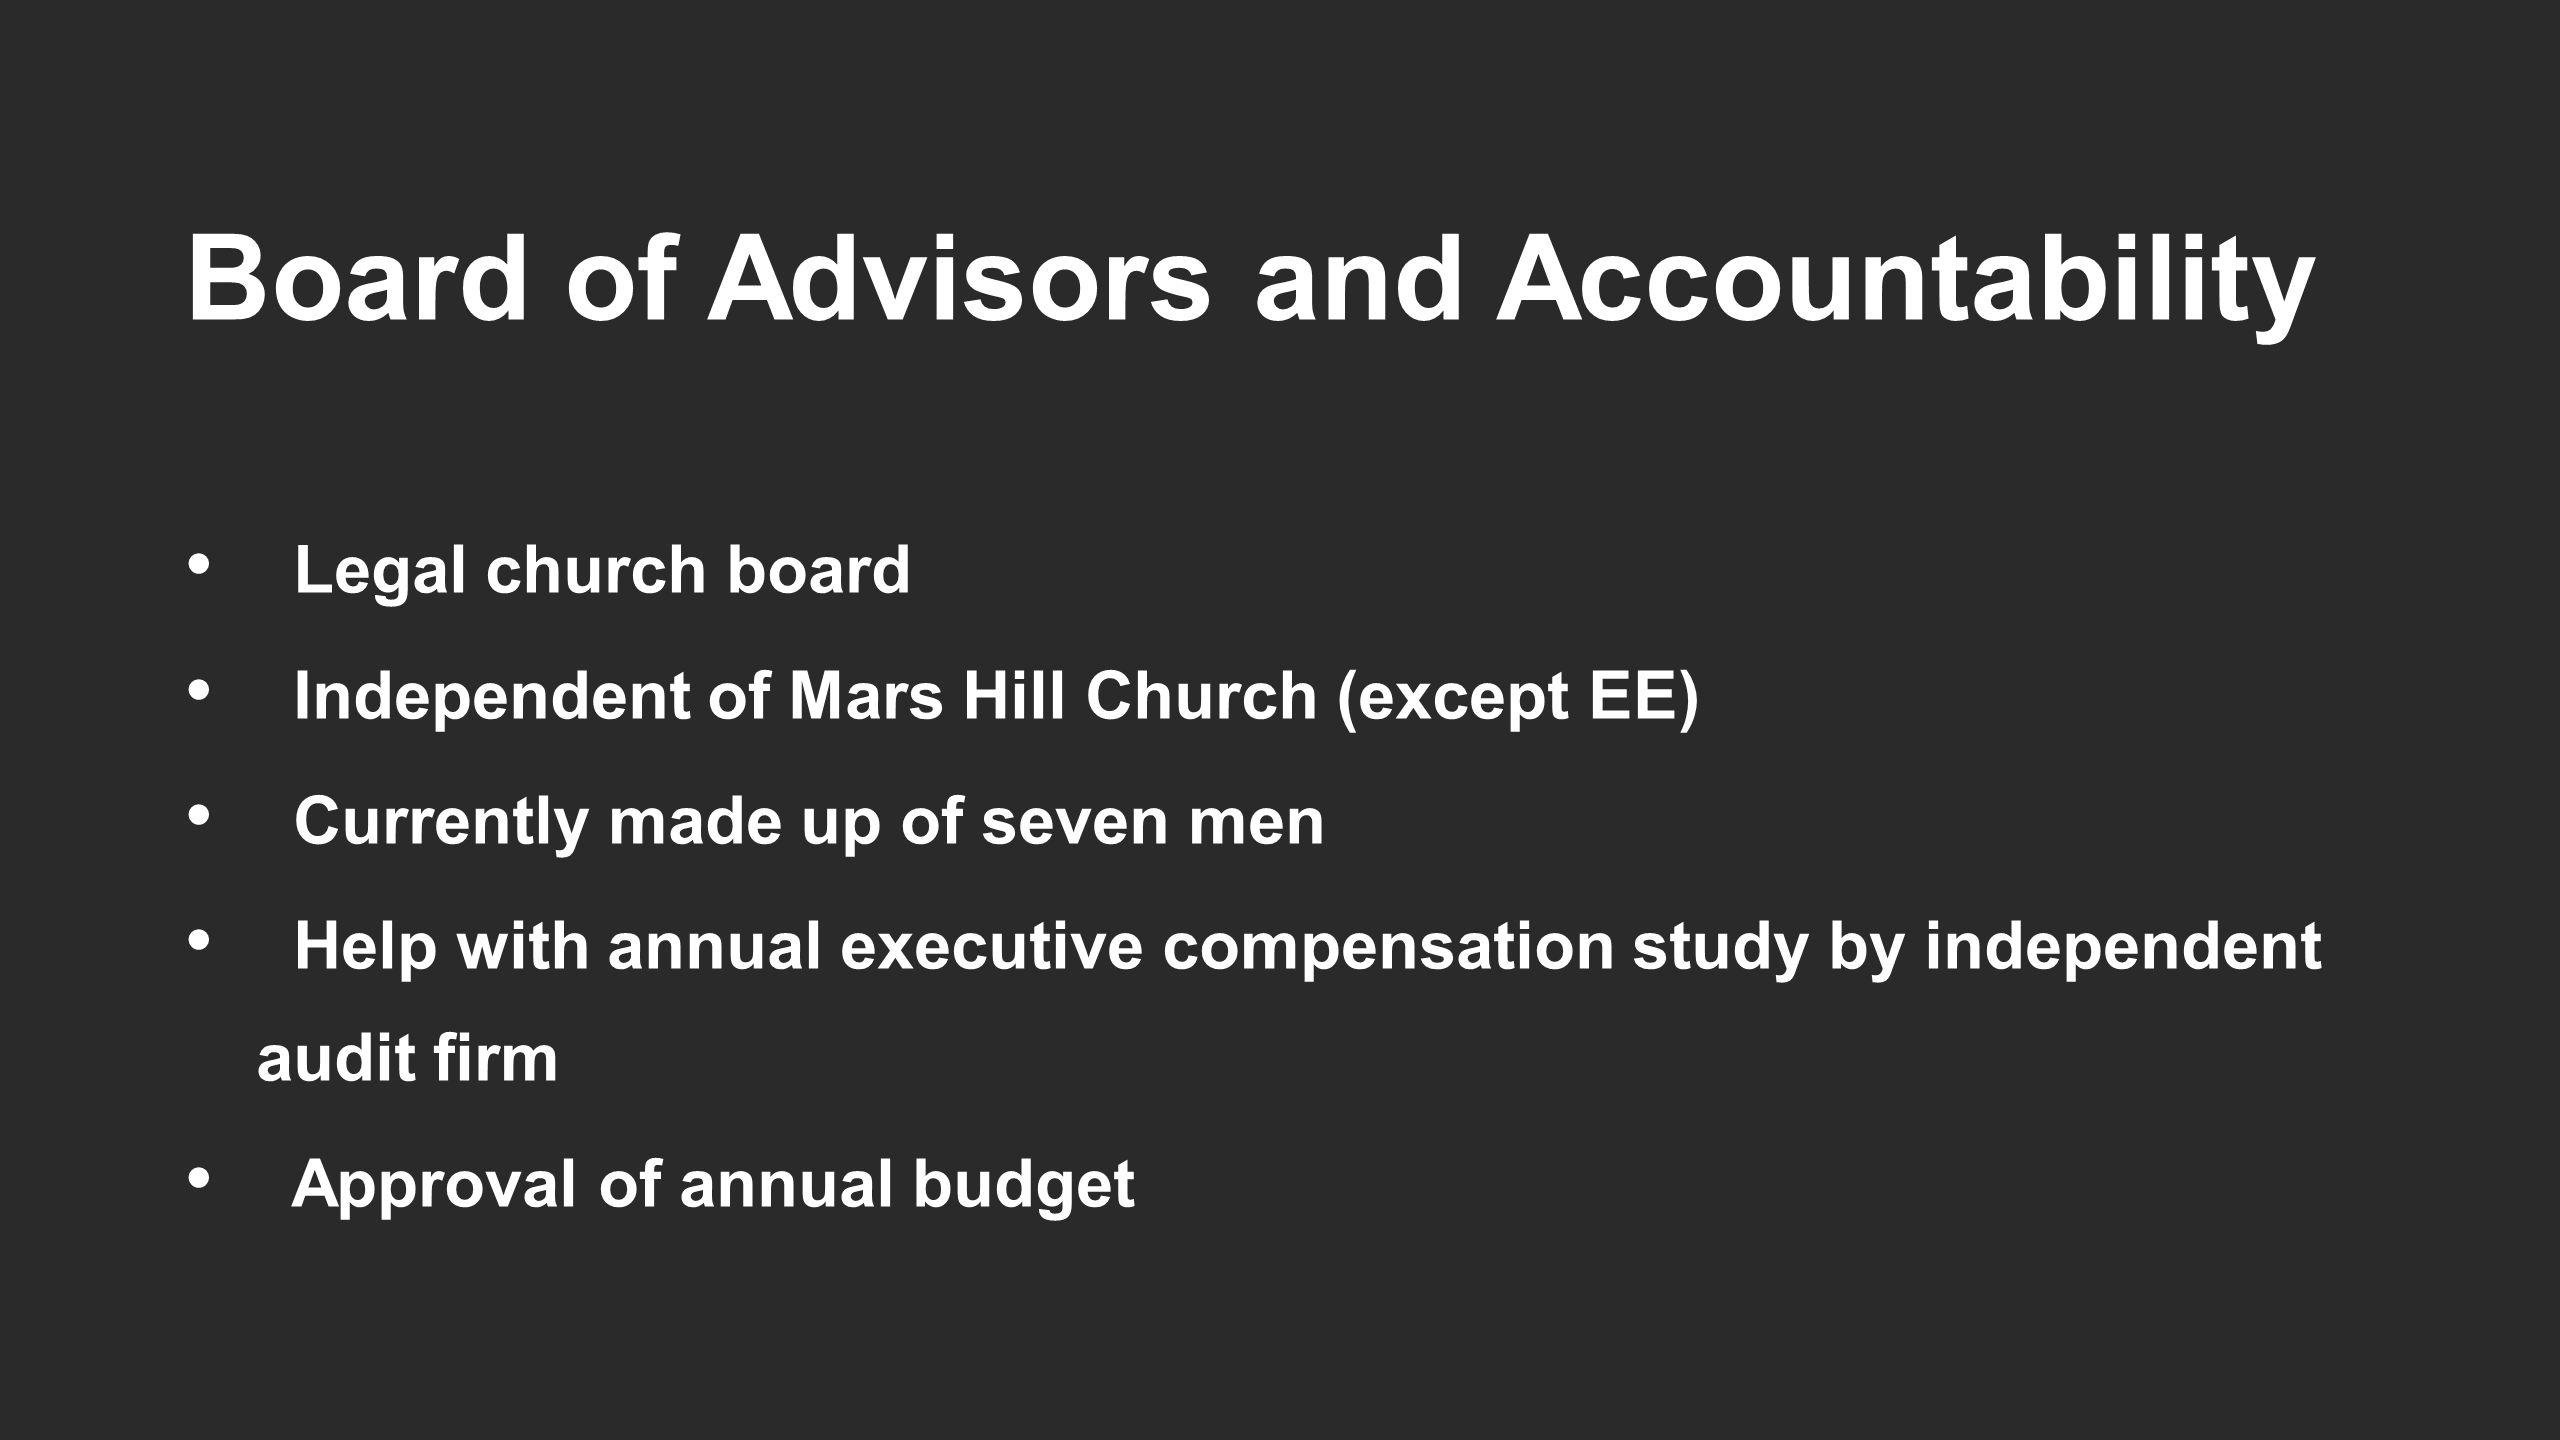 Board of Advisors and Accountability Legal church board Independent of Mars Hill Church (except EE) Currently made up of seven men Help with annual executive compensation study by independent audit firm Approval of annual budget